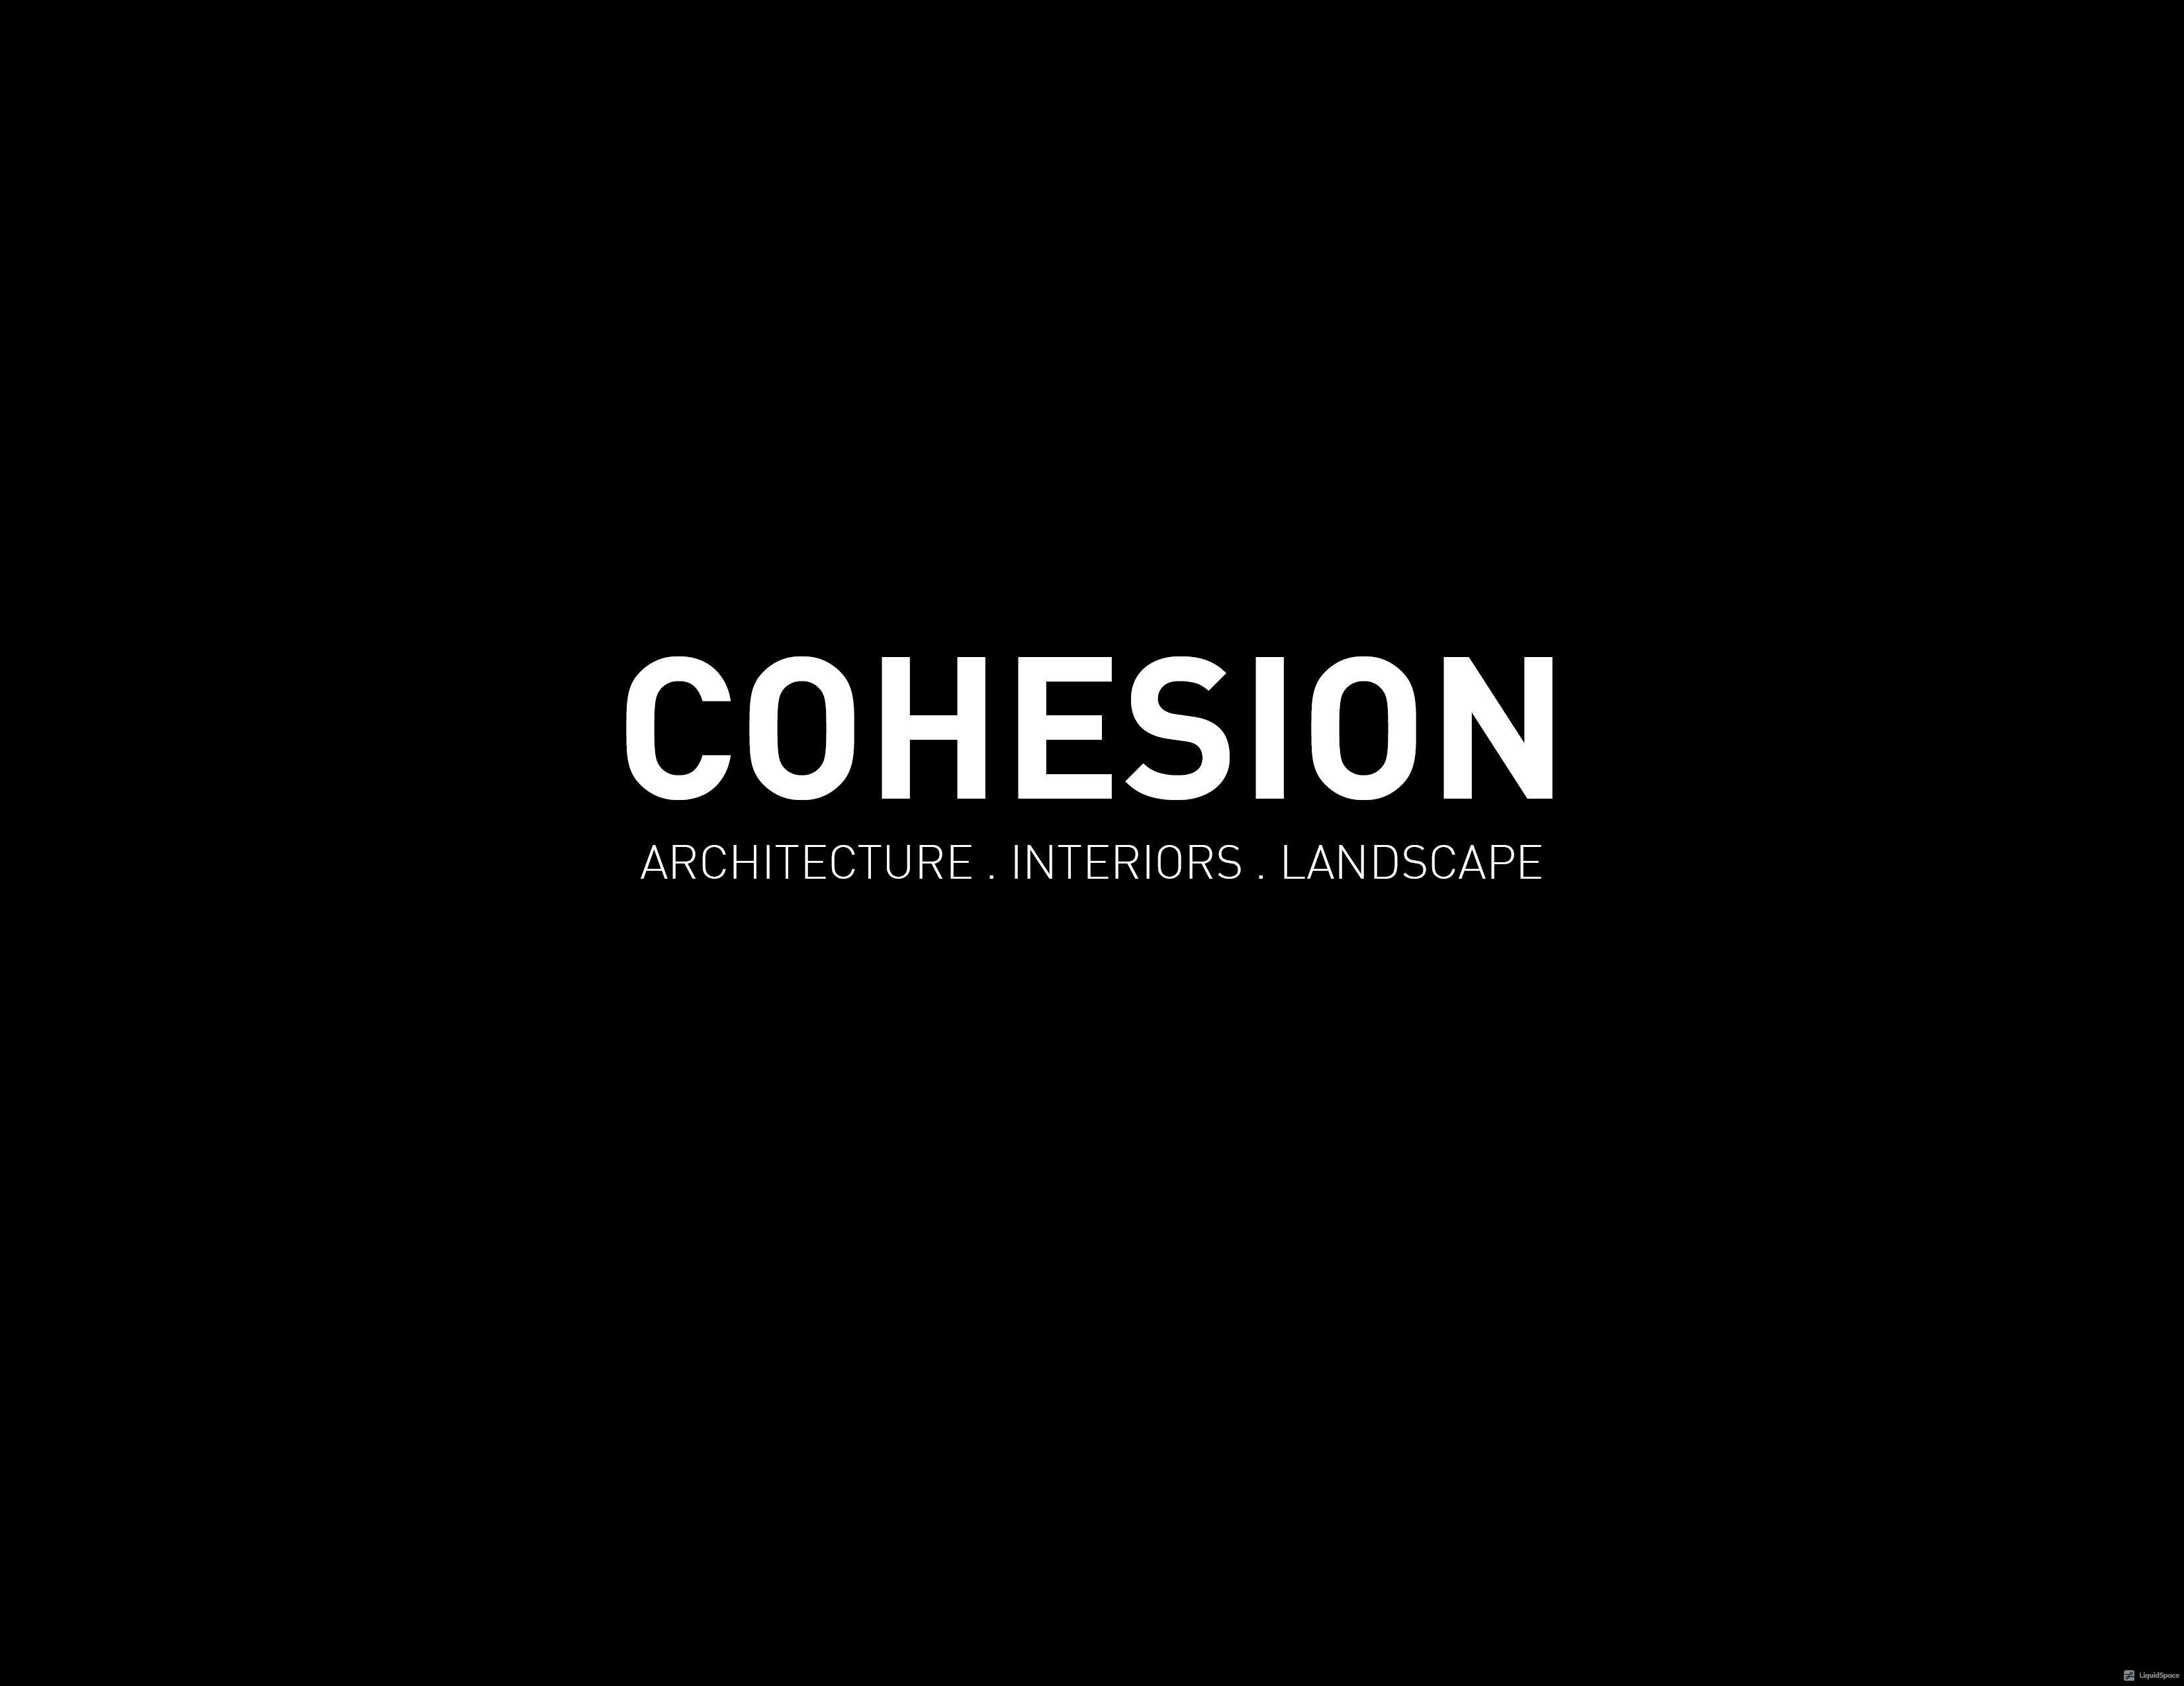 Logo of Cohesion